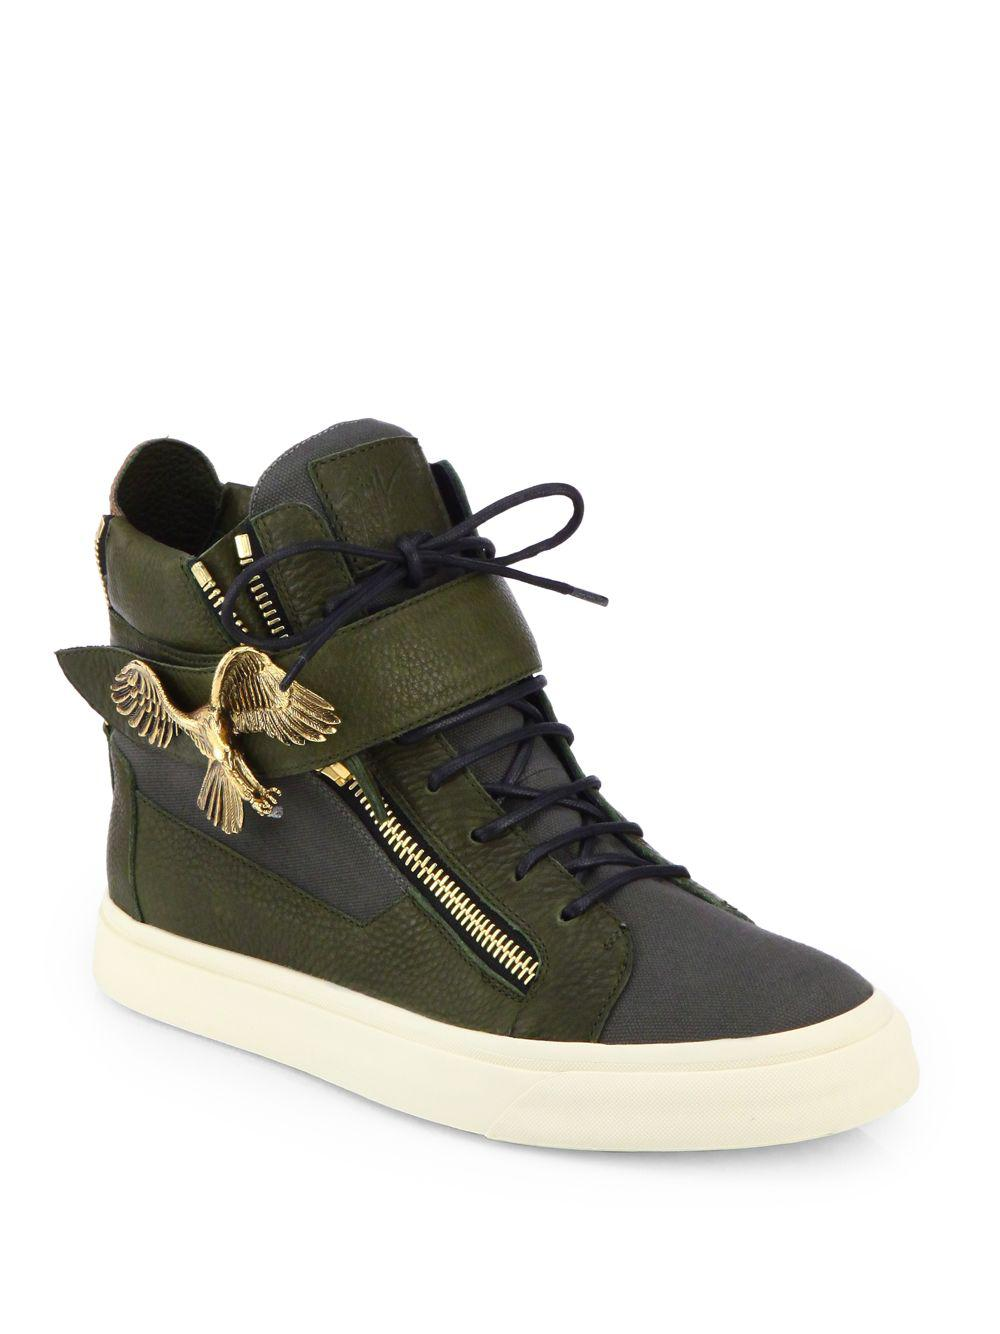 18f7af526354 Lyst - Giuseppe Zanotti Eagle High-top Sneakers for Men